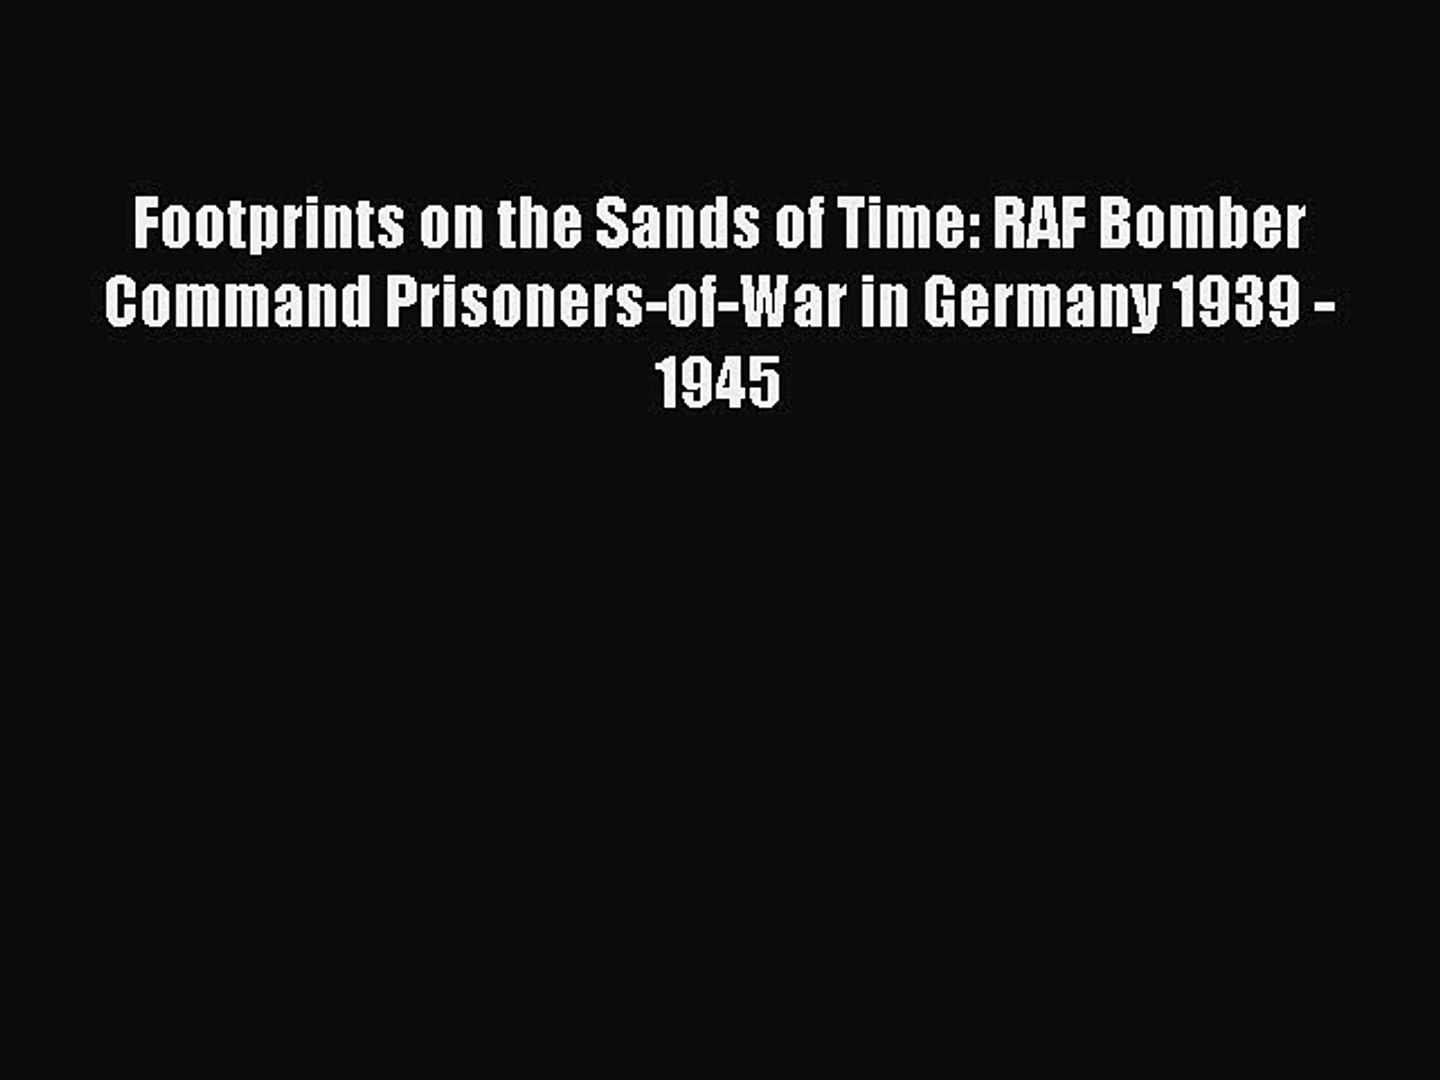 [Read book] Footprints on the Sands of Time: RAF Bomber Command Prisoners-of-War in Germany